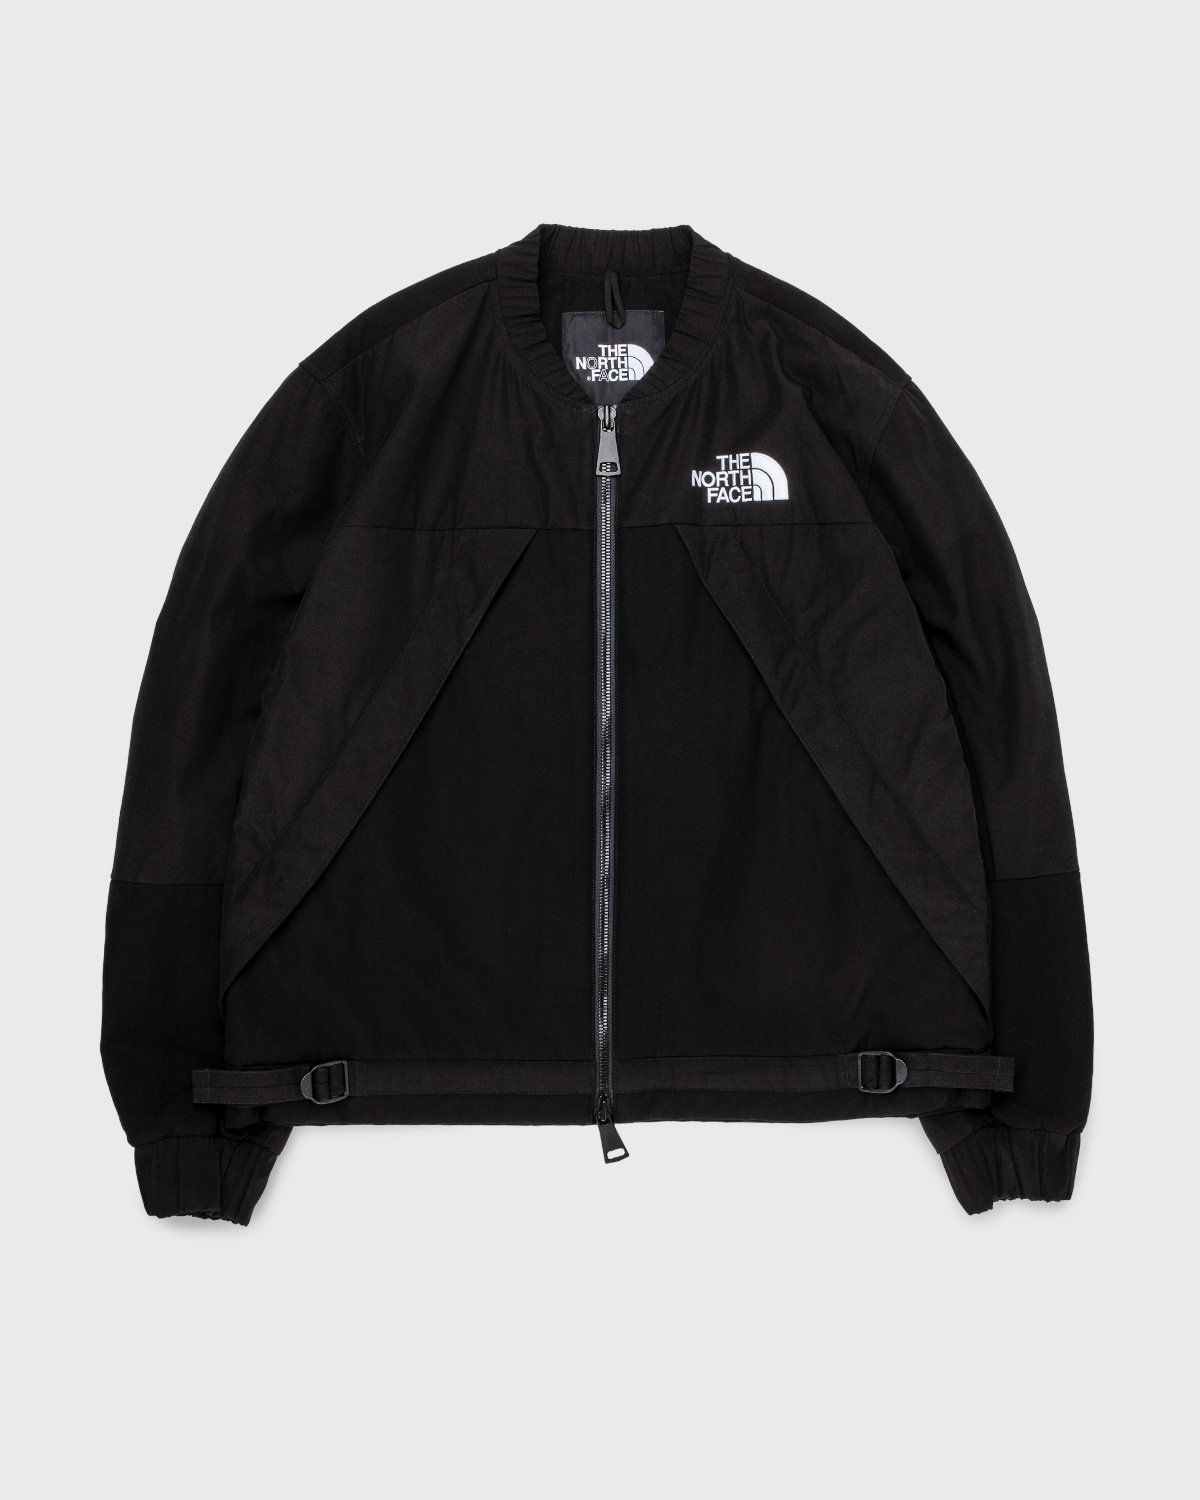 The North Face Black Series - Spectra® Blouson Jacket Black  - Image 1